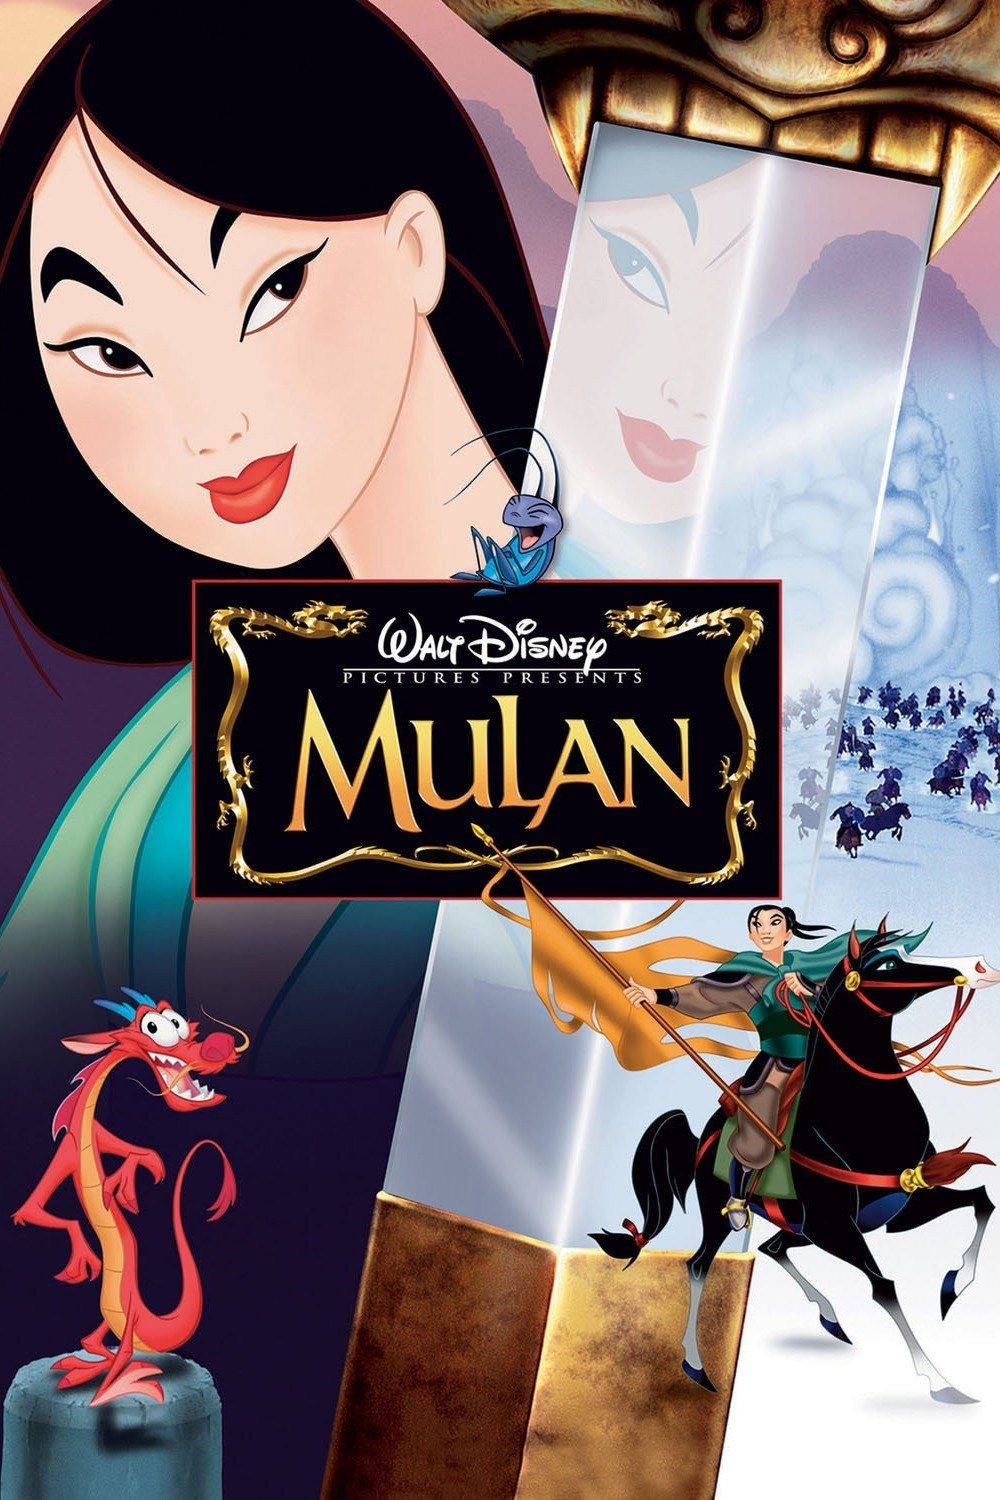 Top 6 Cartoon Movies That Moved and Inspired People Mulan